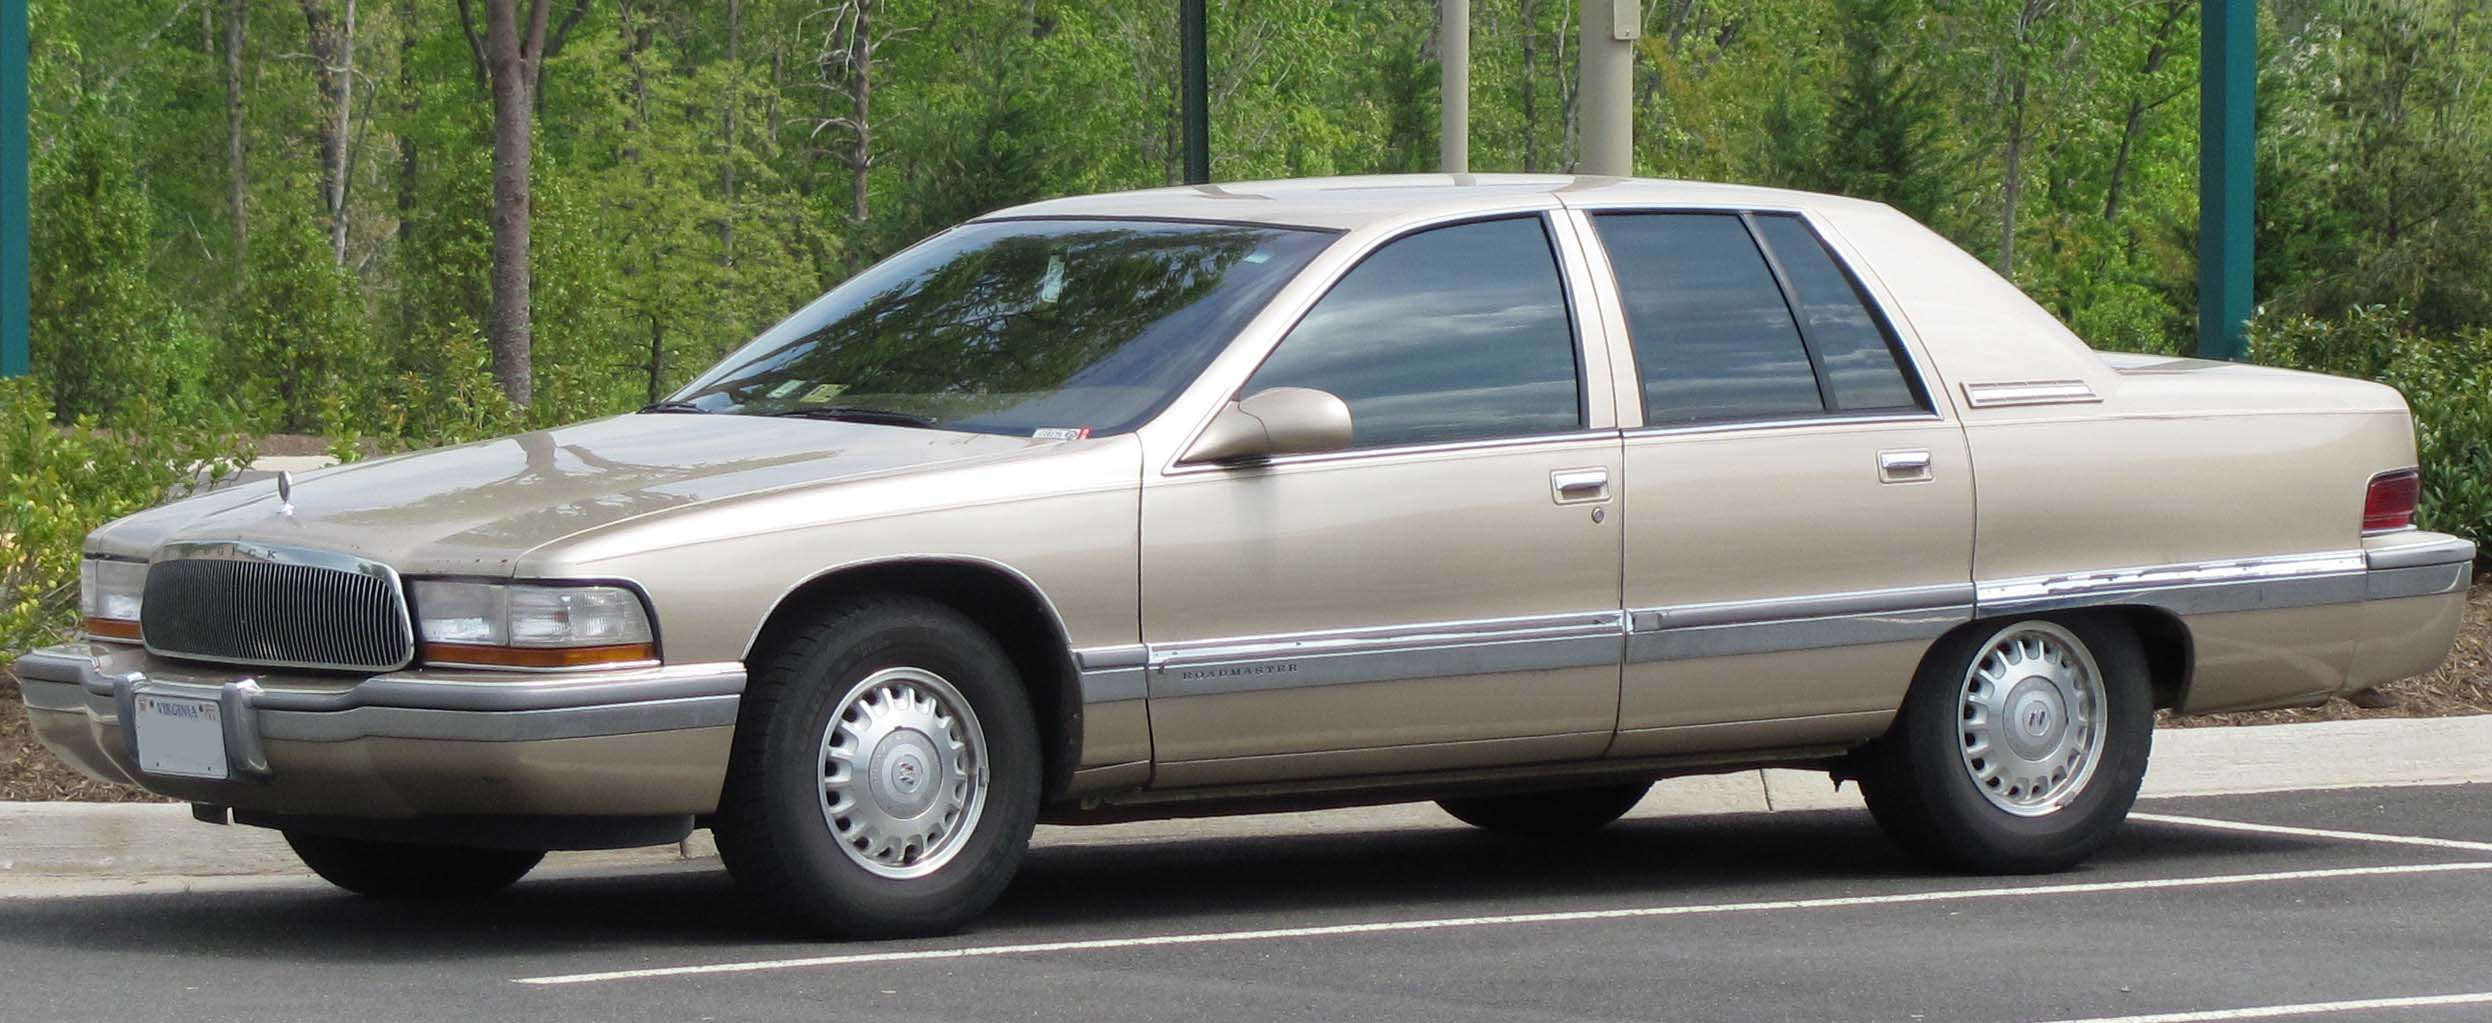 Buick Roadmaster Wikipedia